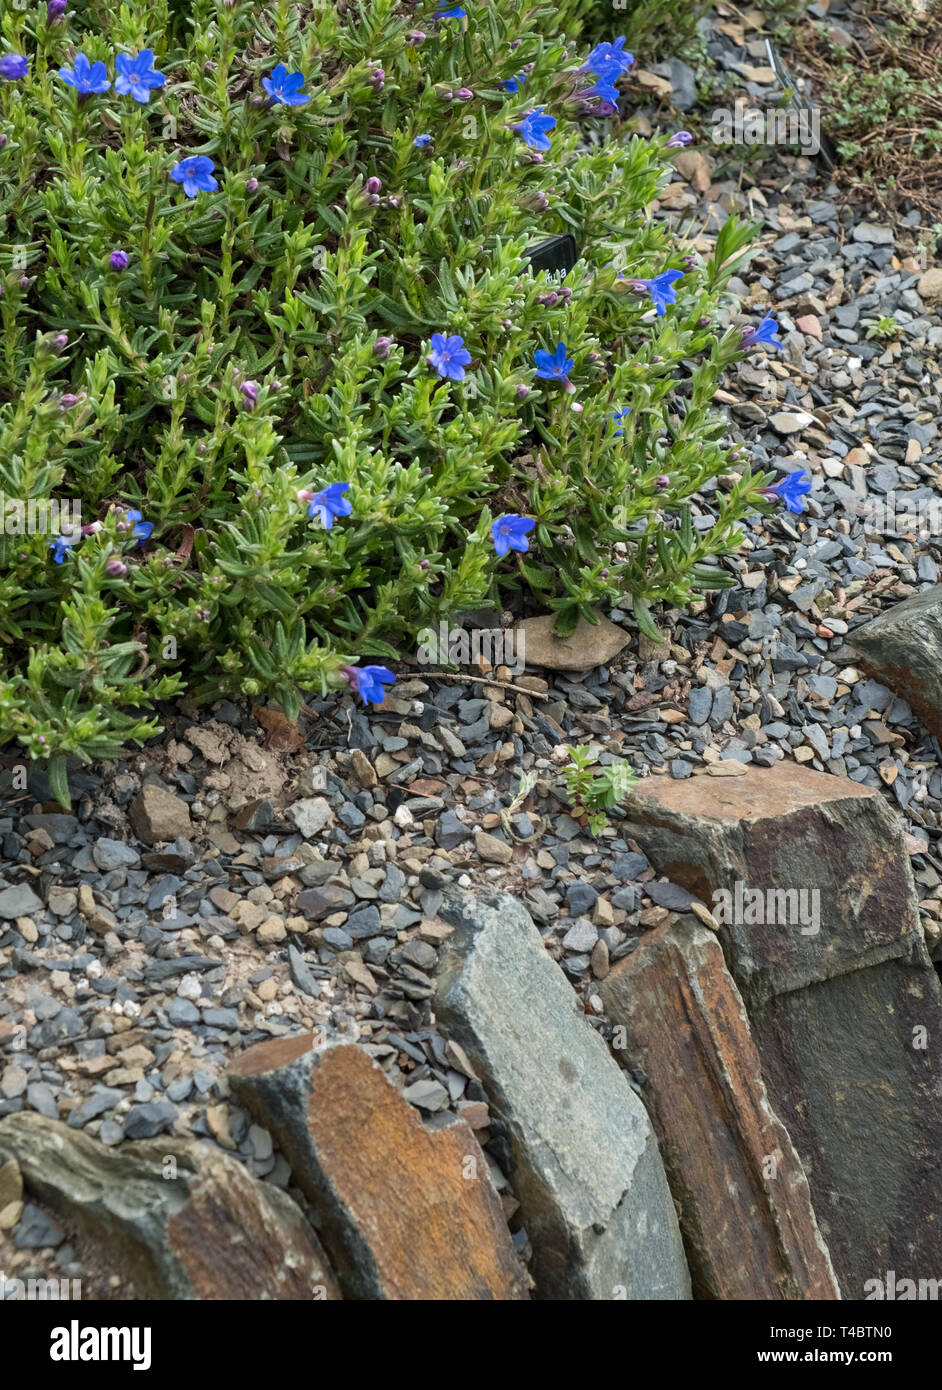 Lithodora Diffusa Heavenly Blue, a small prostrate evergreen shrub with vivid blue flowers growing on a garden wall, April, England, UK Stock Photo